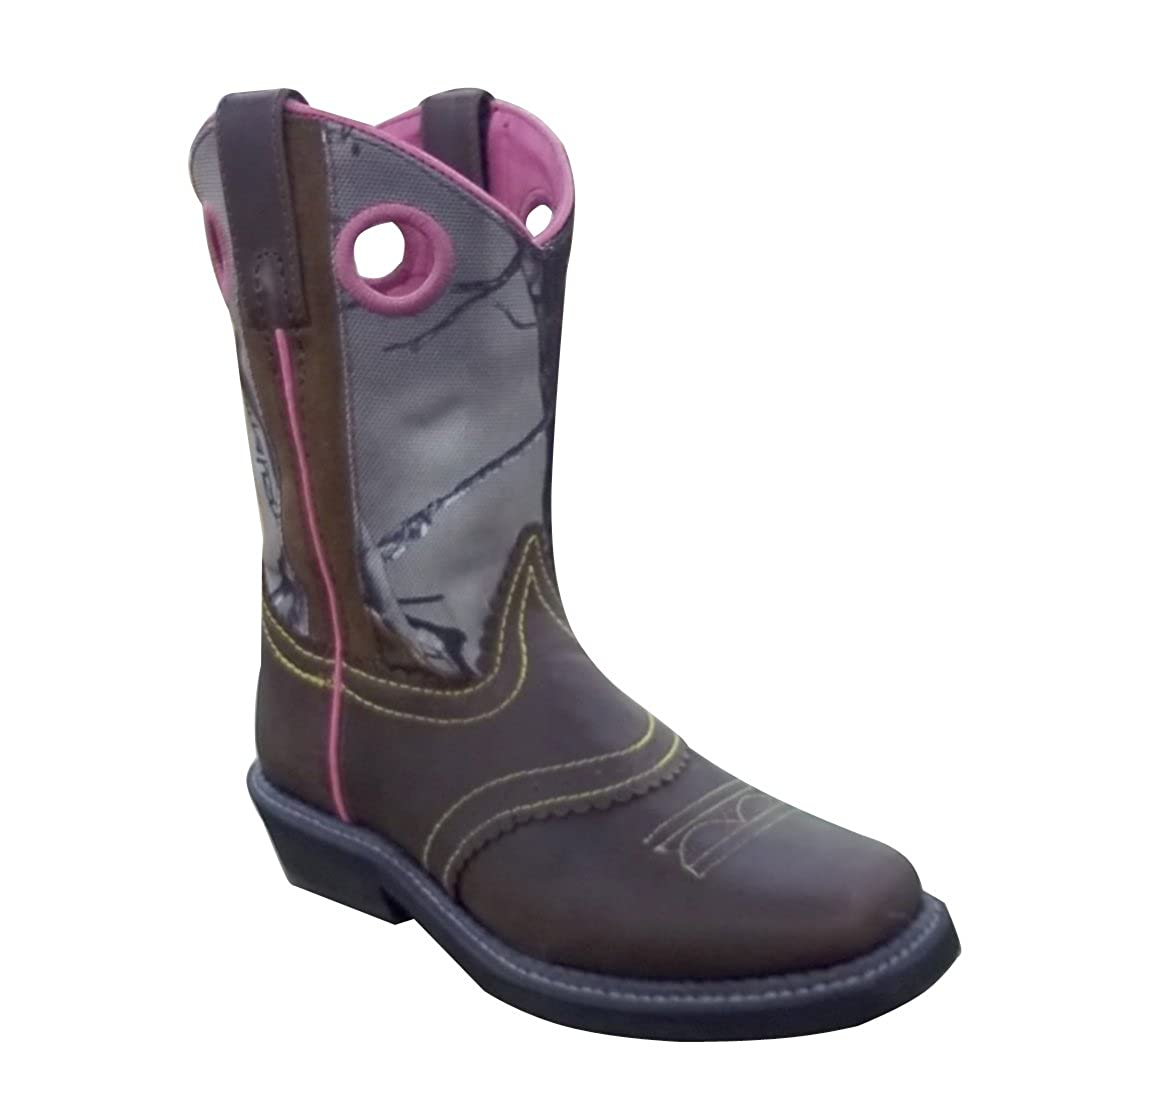 Smoky Mountain Boots-3351C Pawnee Square Toe-Brown//Camo with Pink Trim.